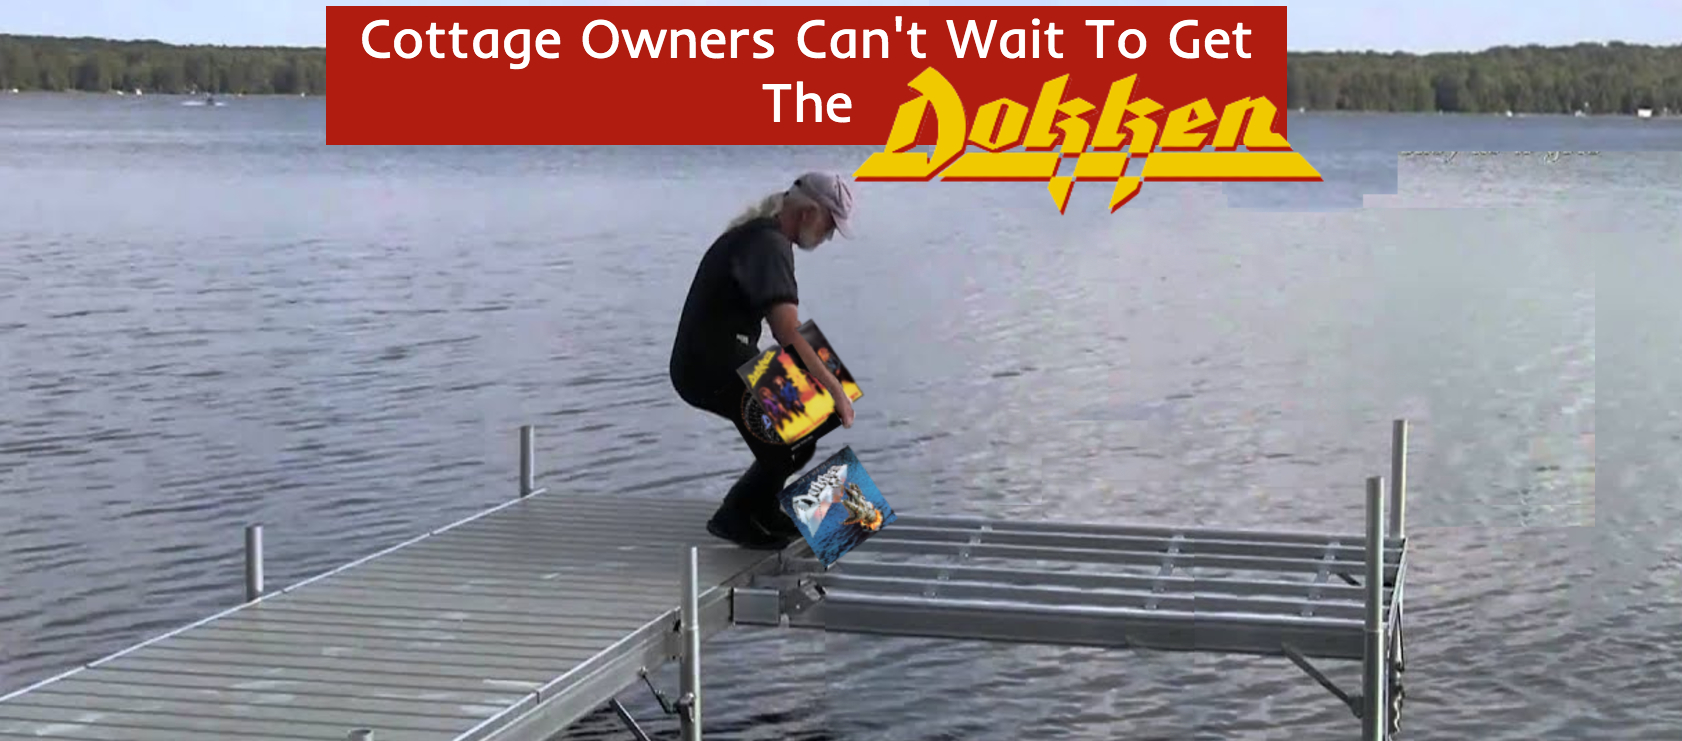 Older man carrying out Dokken records to the incomplete end of the dock. Clearly a dock piece was replaced in photoshop